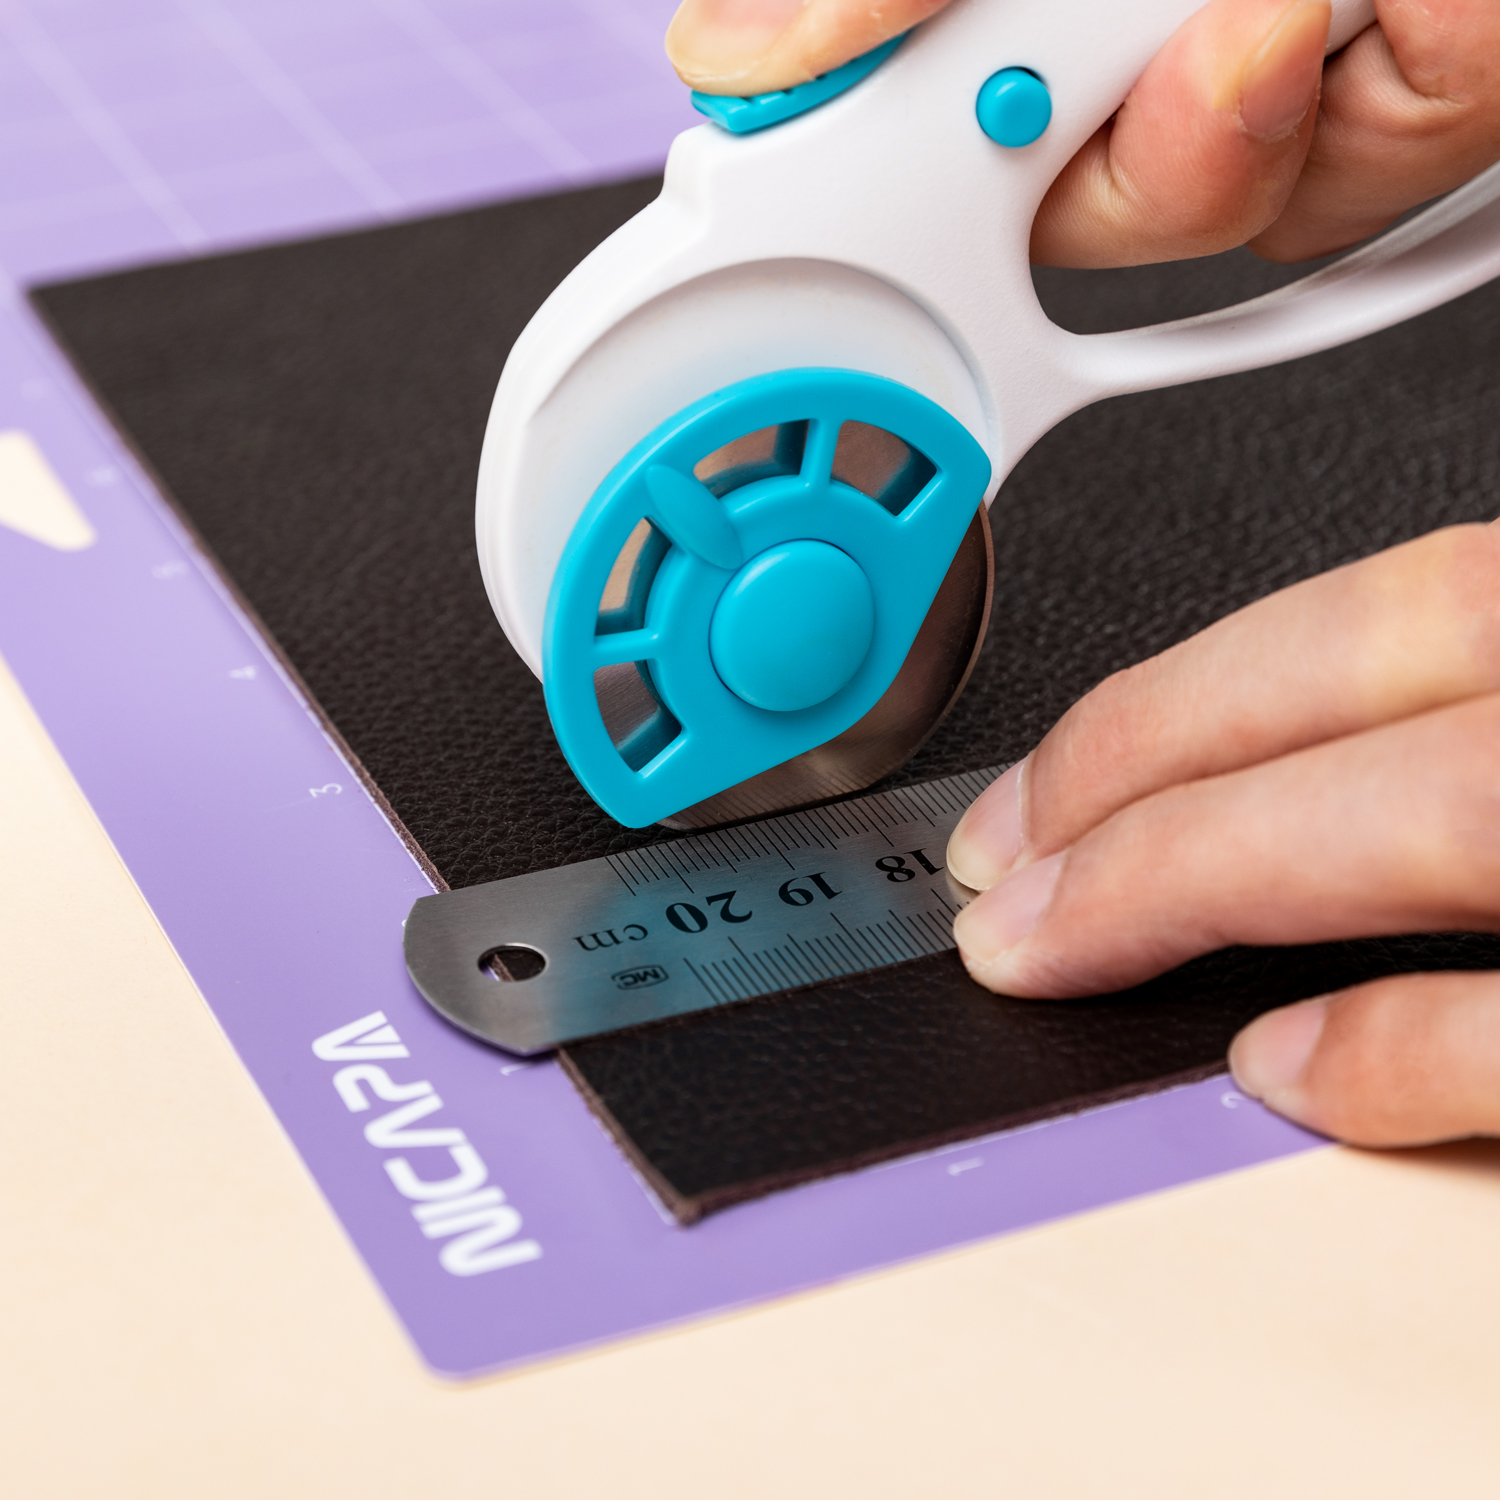 NICAPA 45mm Rotary Cutter for Fabric with Safety Lock Ergonomic Classic Comfort Loop Rotary Cutter (Extra 5 Replacement Blades)